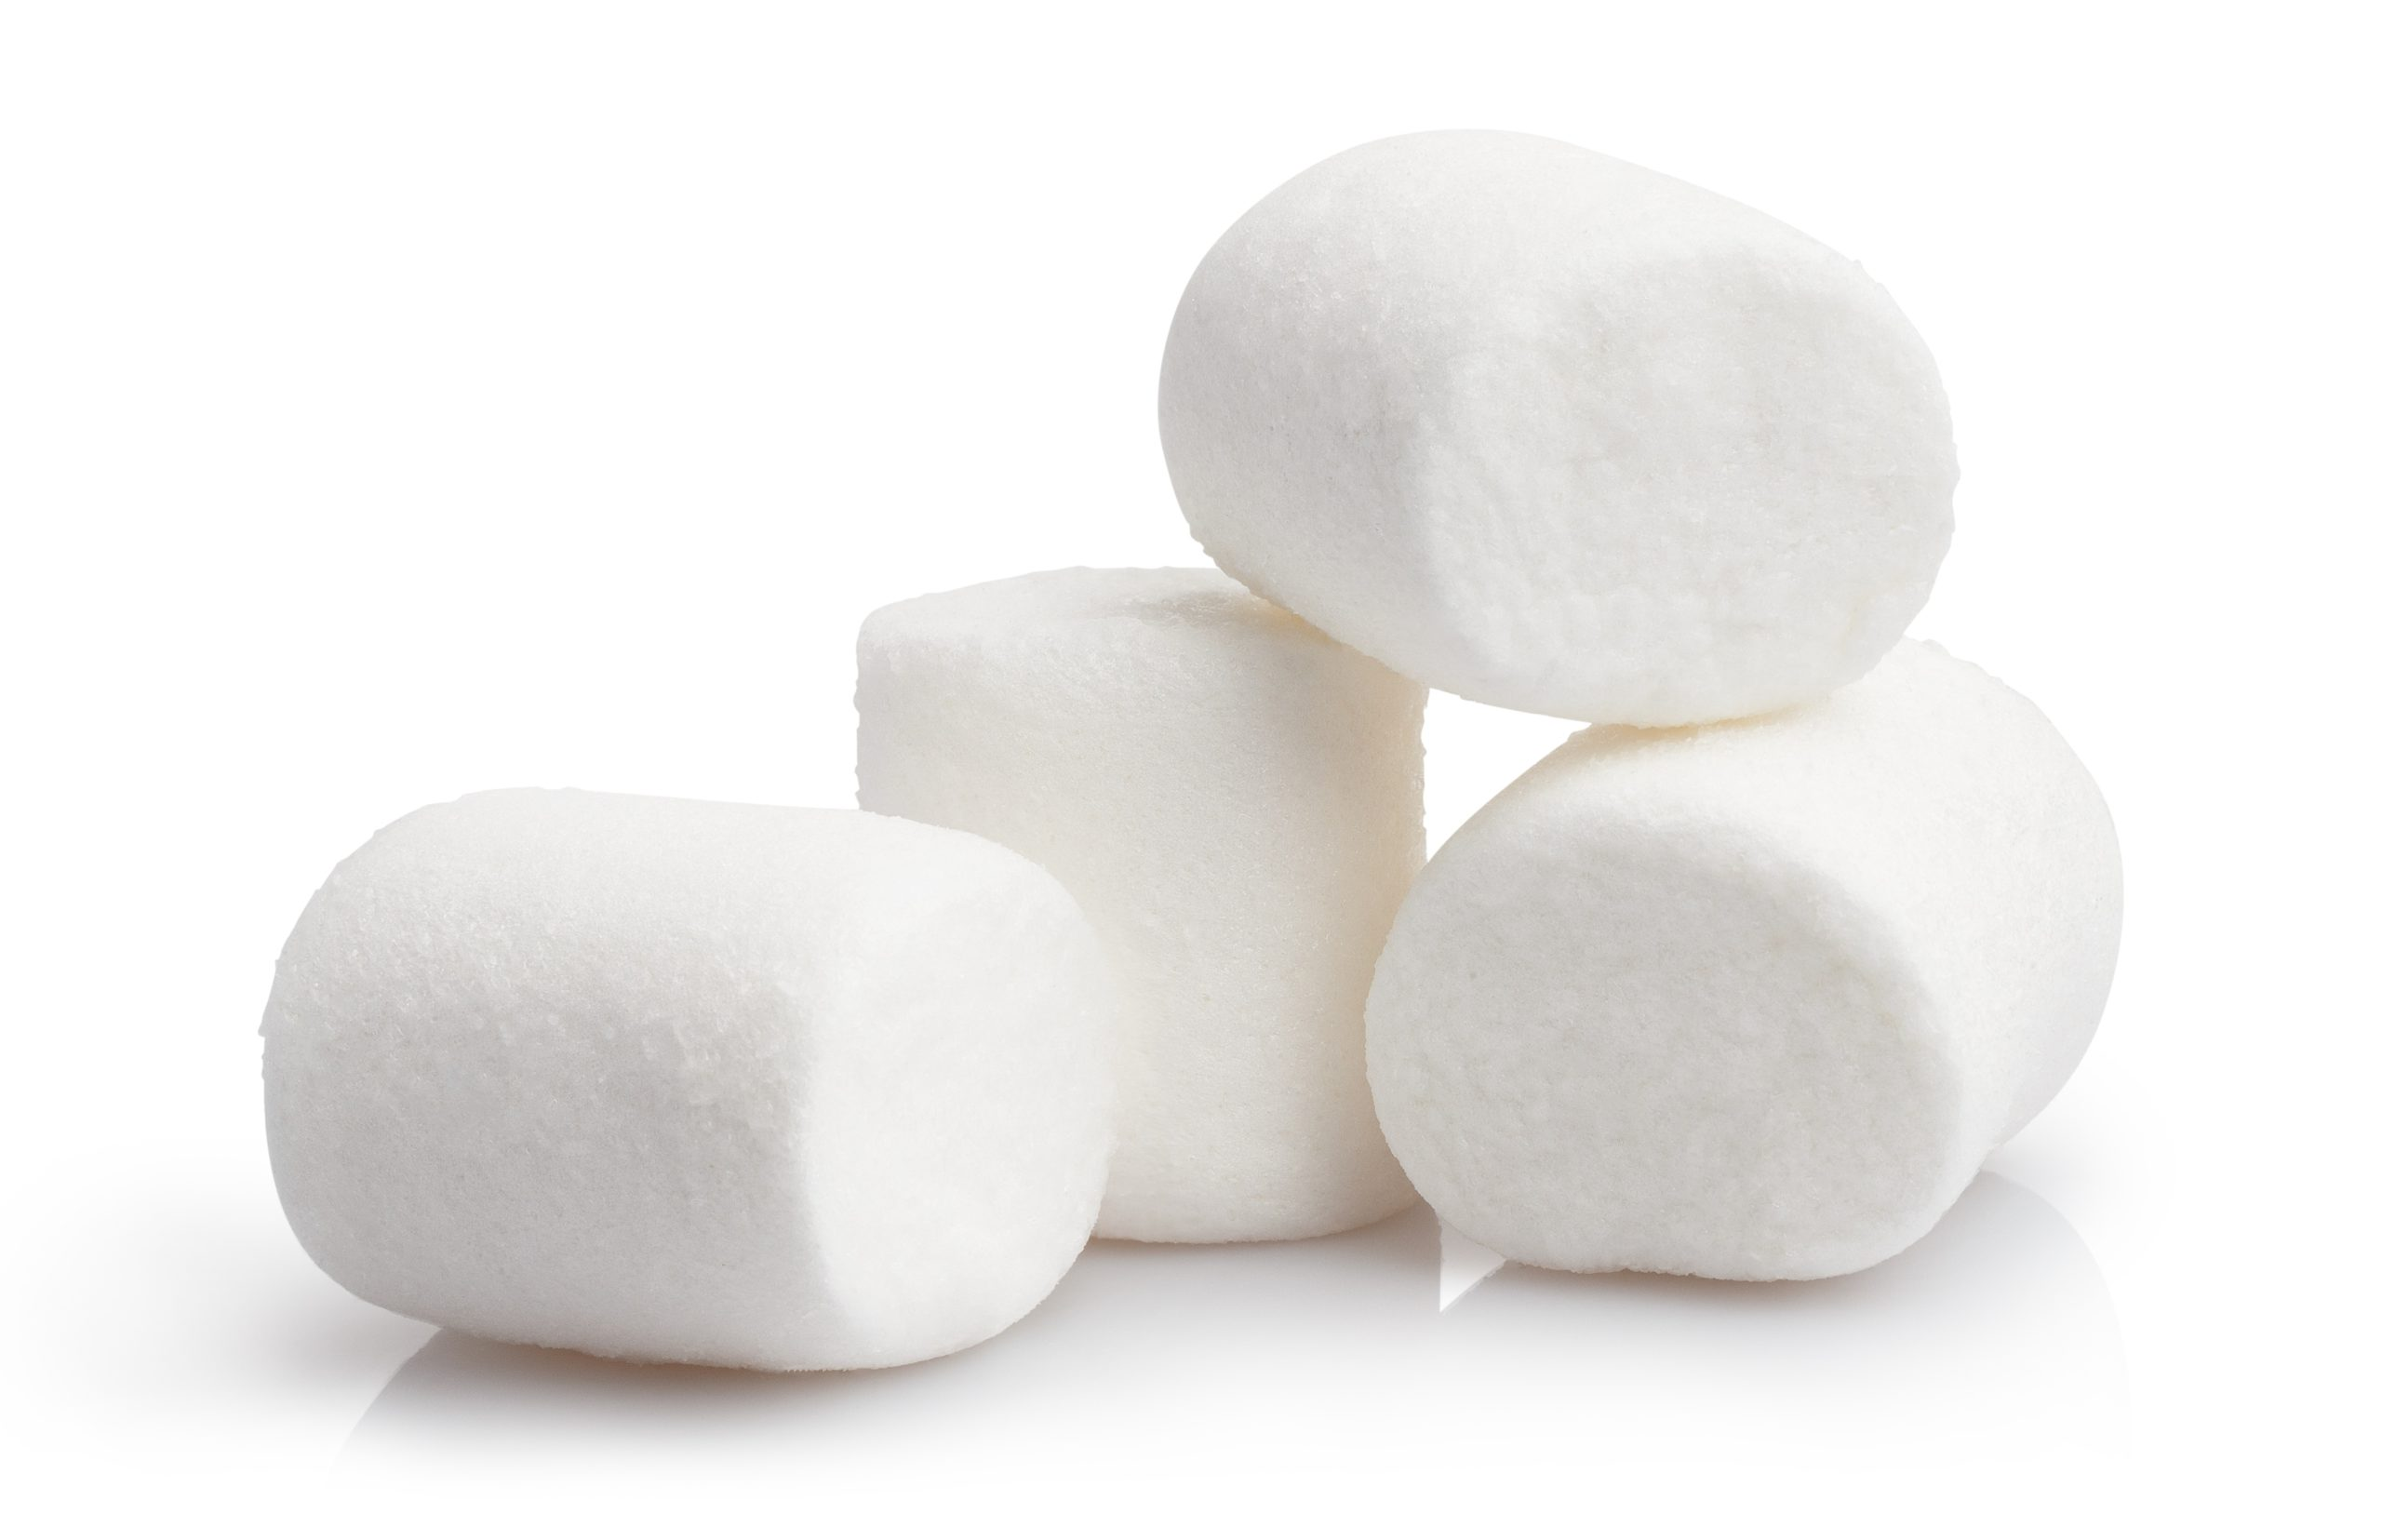 Pile of marshmallows isolated on a white background.